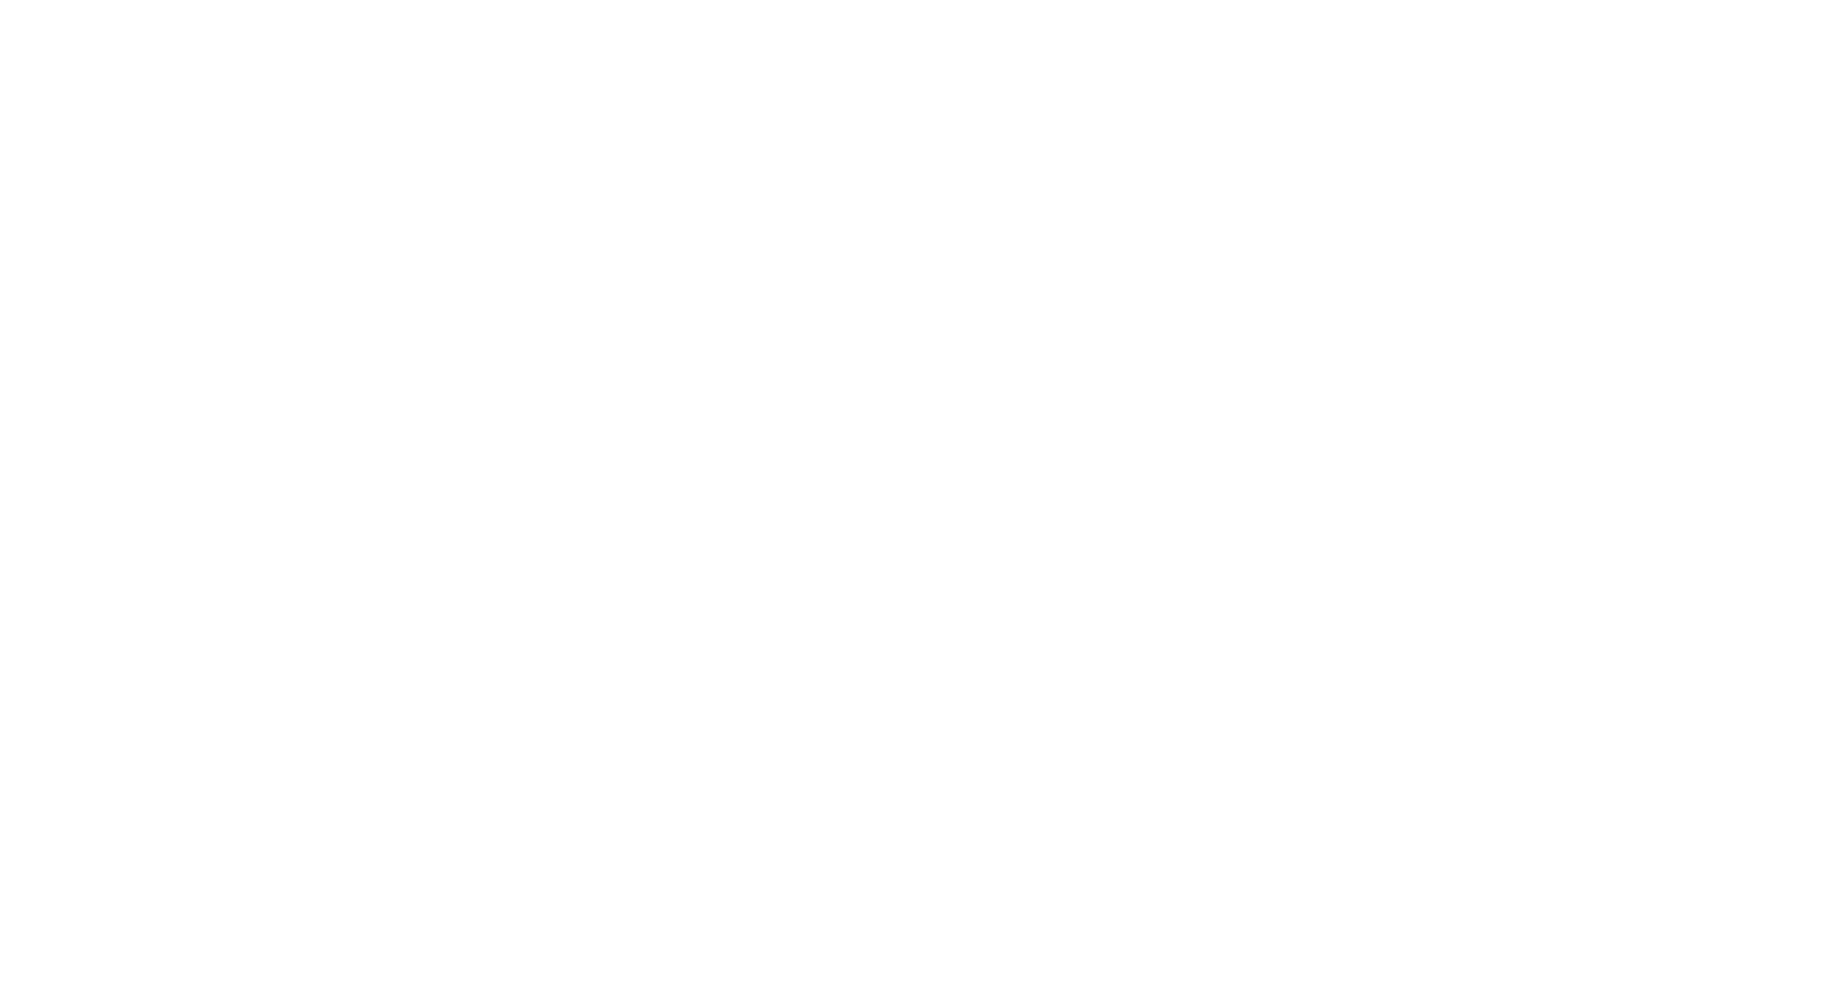 Le site internet  Groupe Immobilier Angelotti